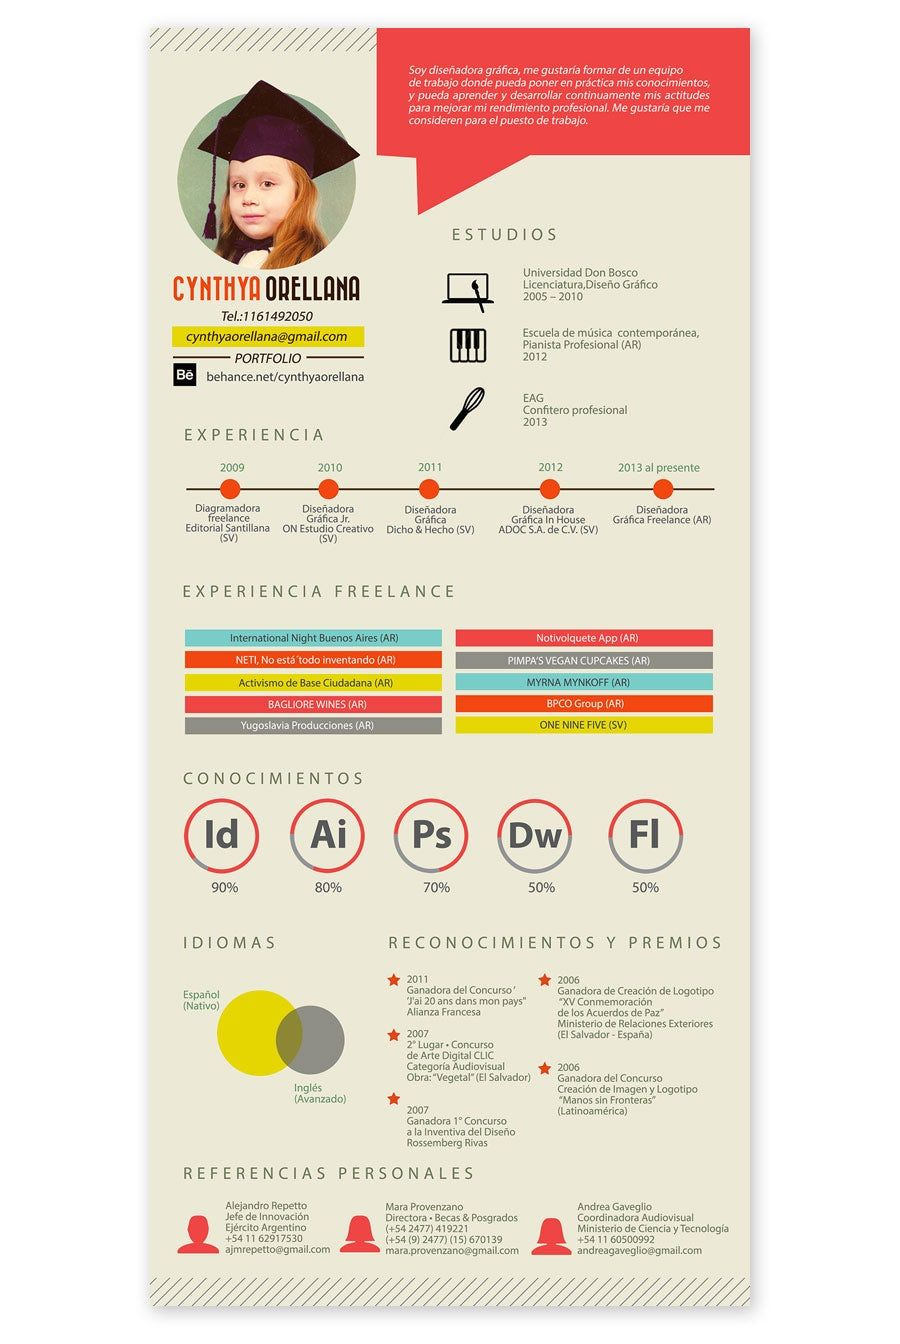 10 resume designs thatll make you want to update yours